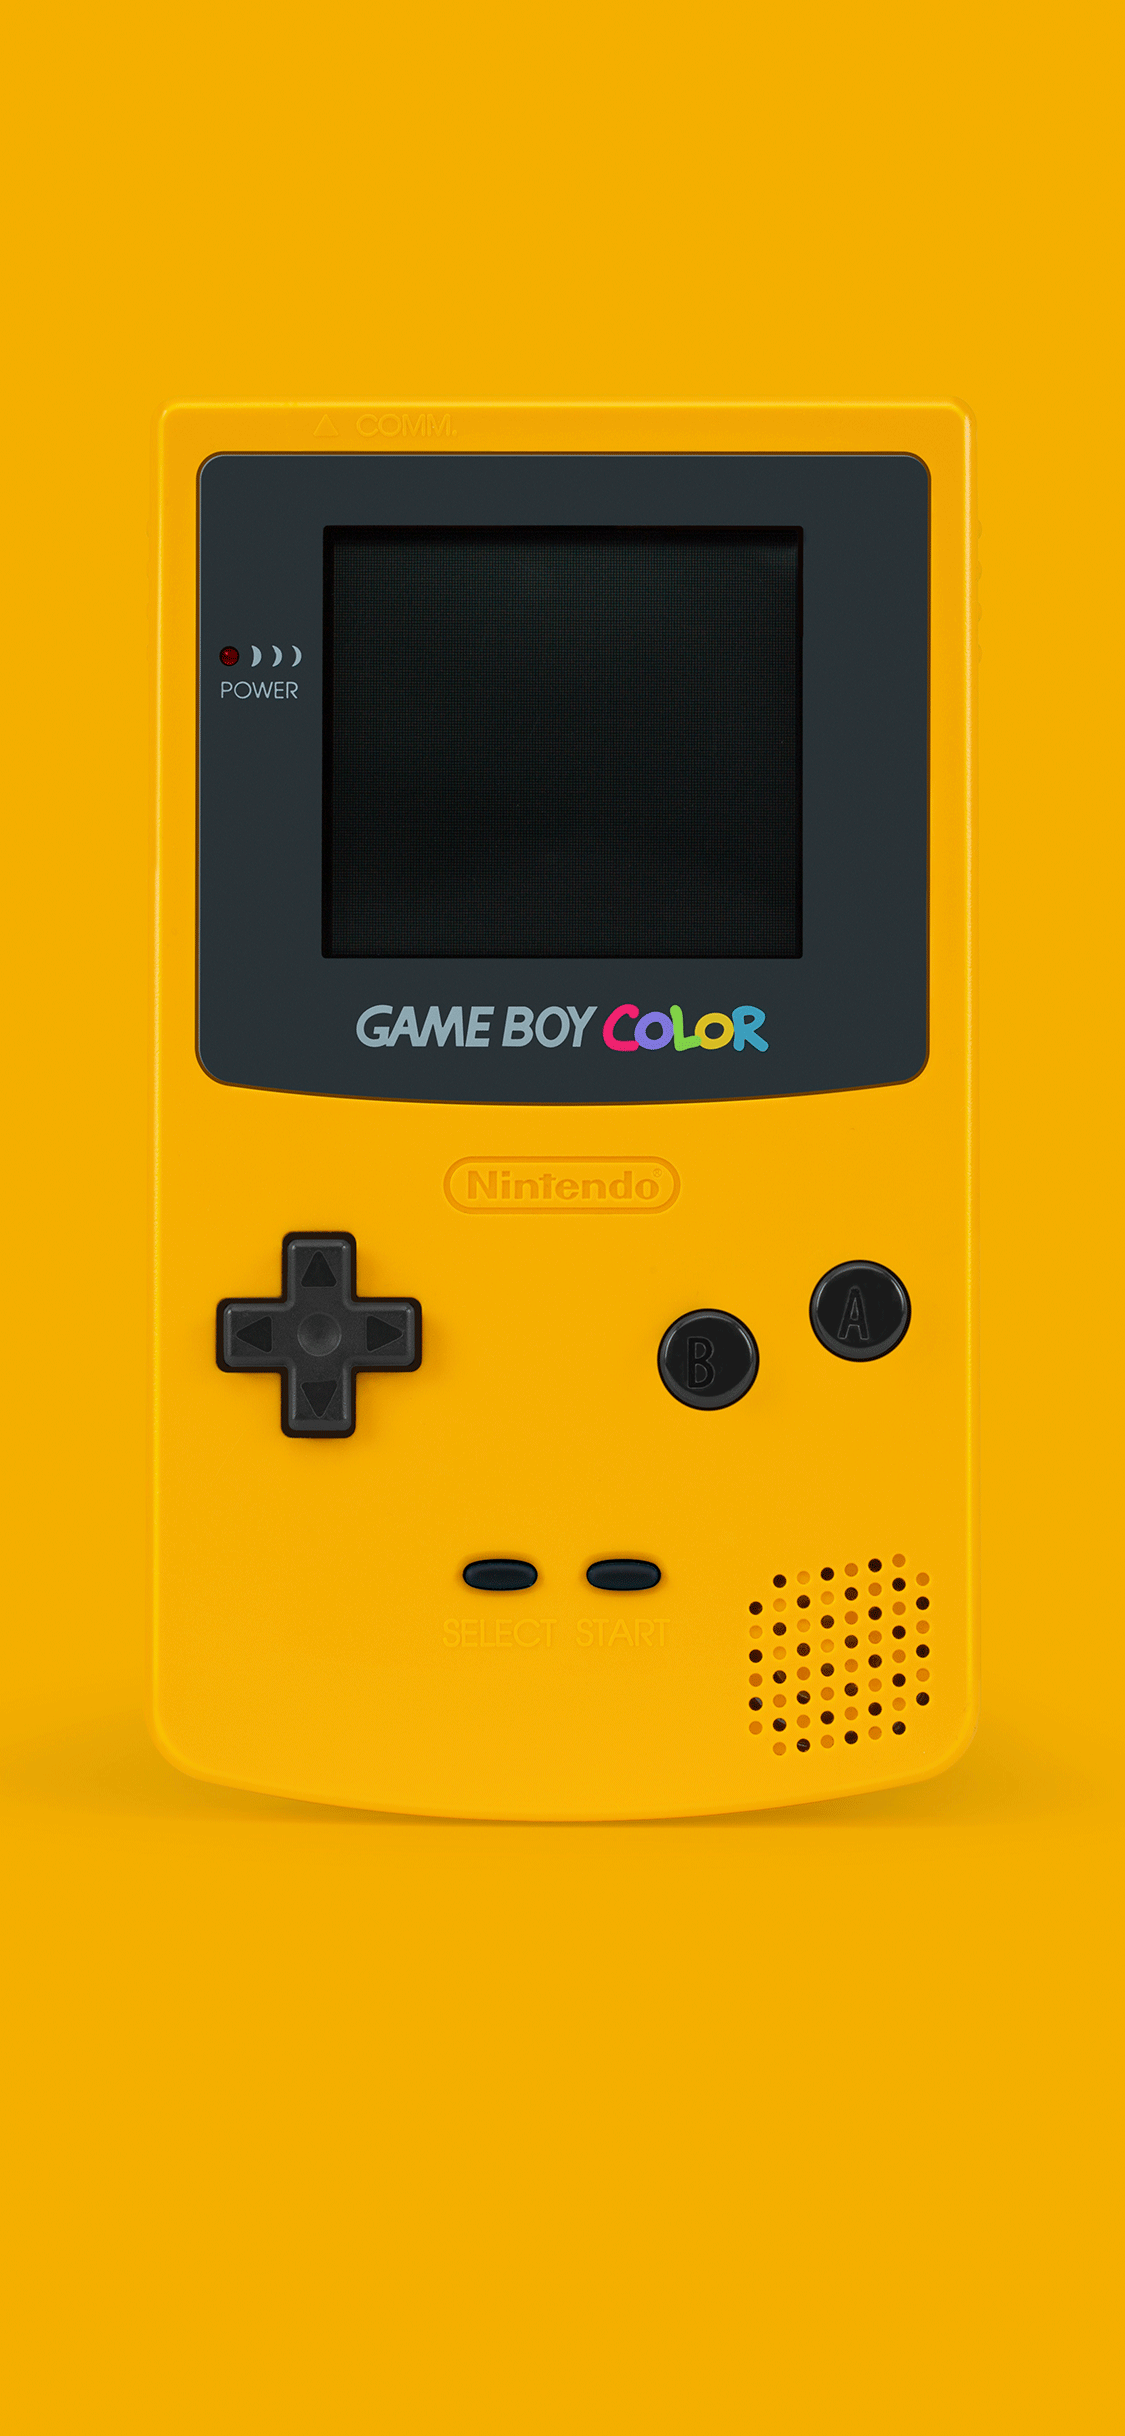 iPhone wallpaper retro gameboy color Fonds d'écran iPhone du 18/07/2018